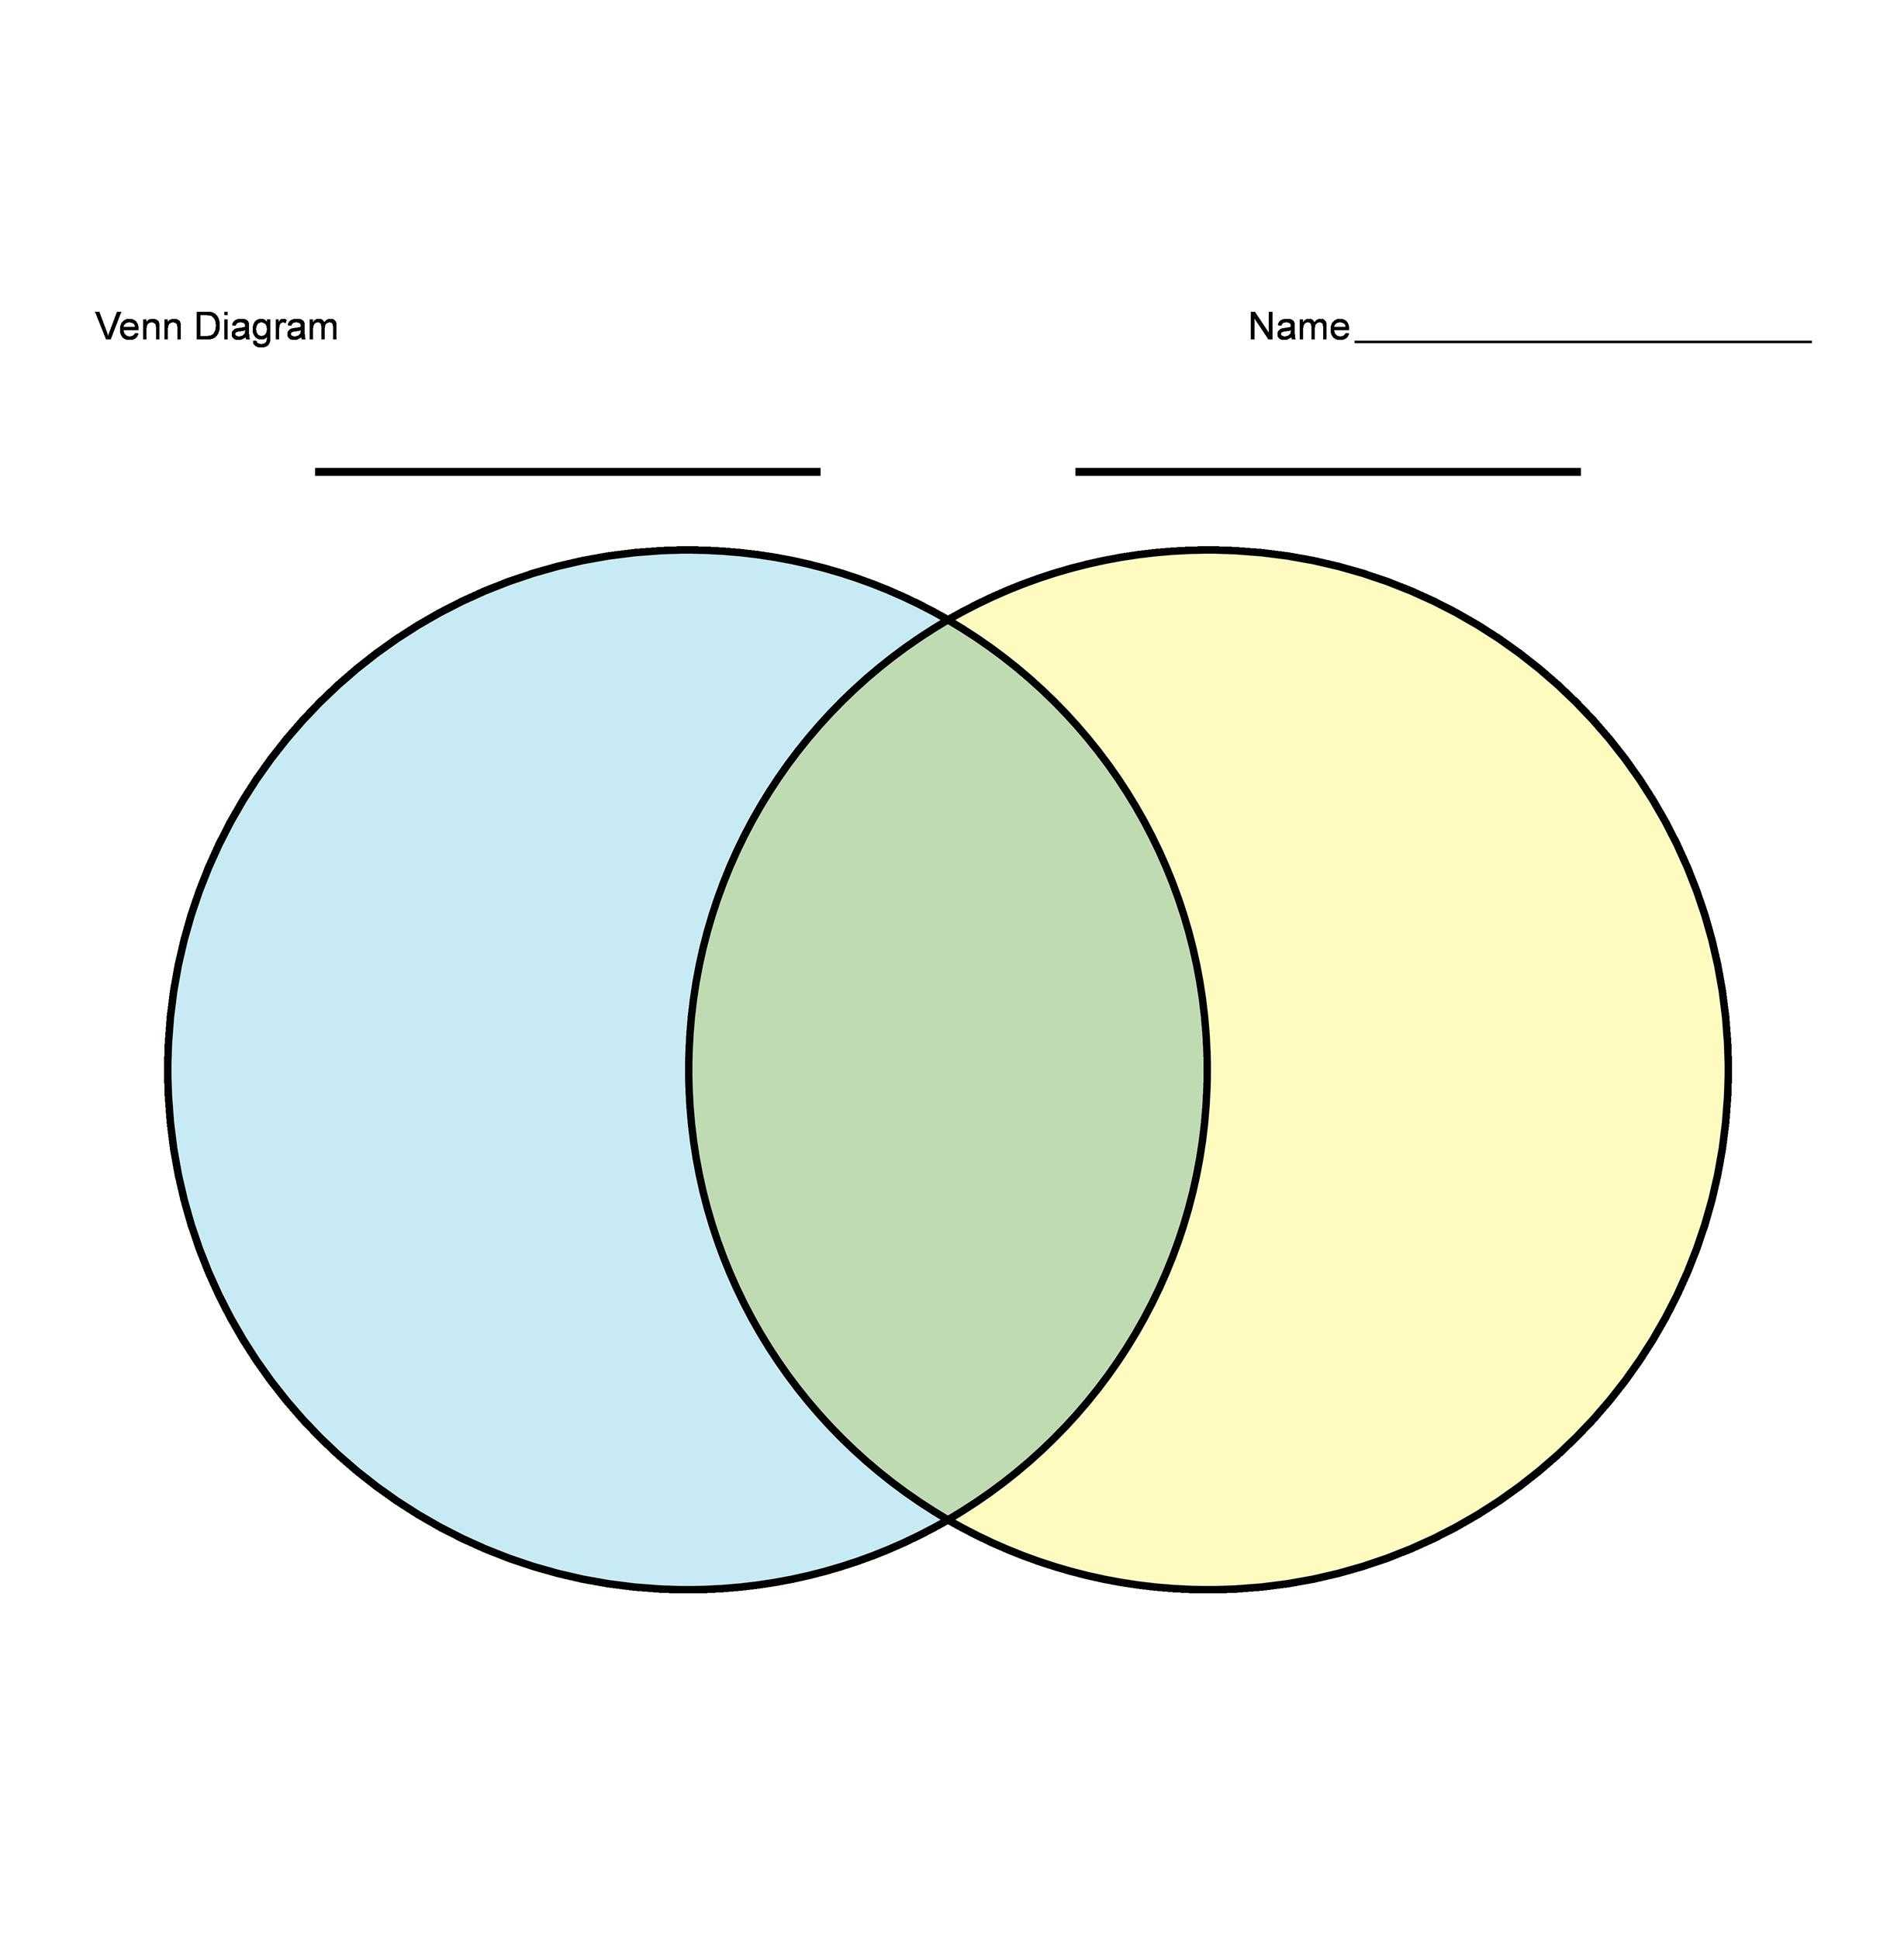 40 Free Venn Diagram Templates Word PDF TemplateLab